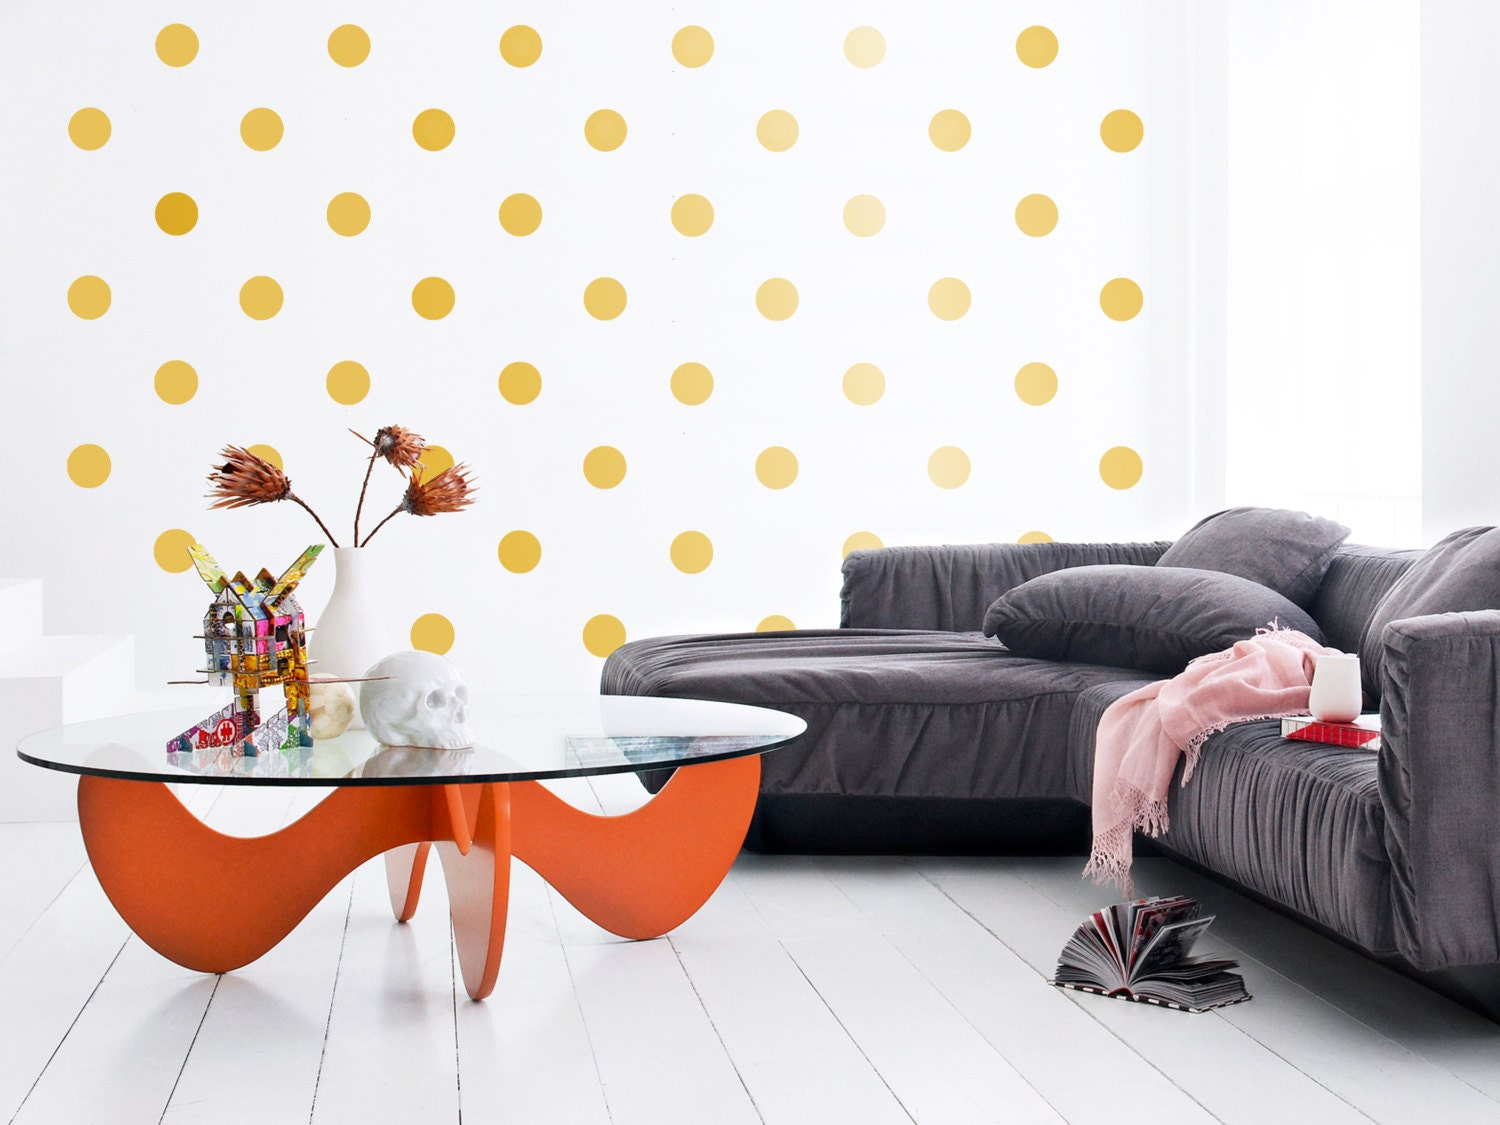 Polka Dot Bedroom Decor Large Polka Dot Wall Sticker Polka Dot Wall Sticker Wall Decal